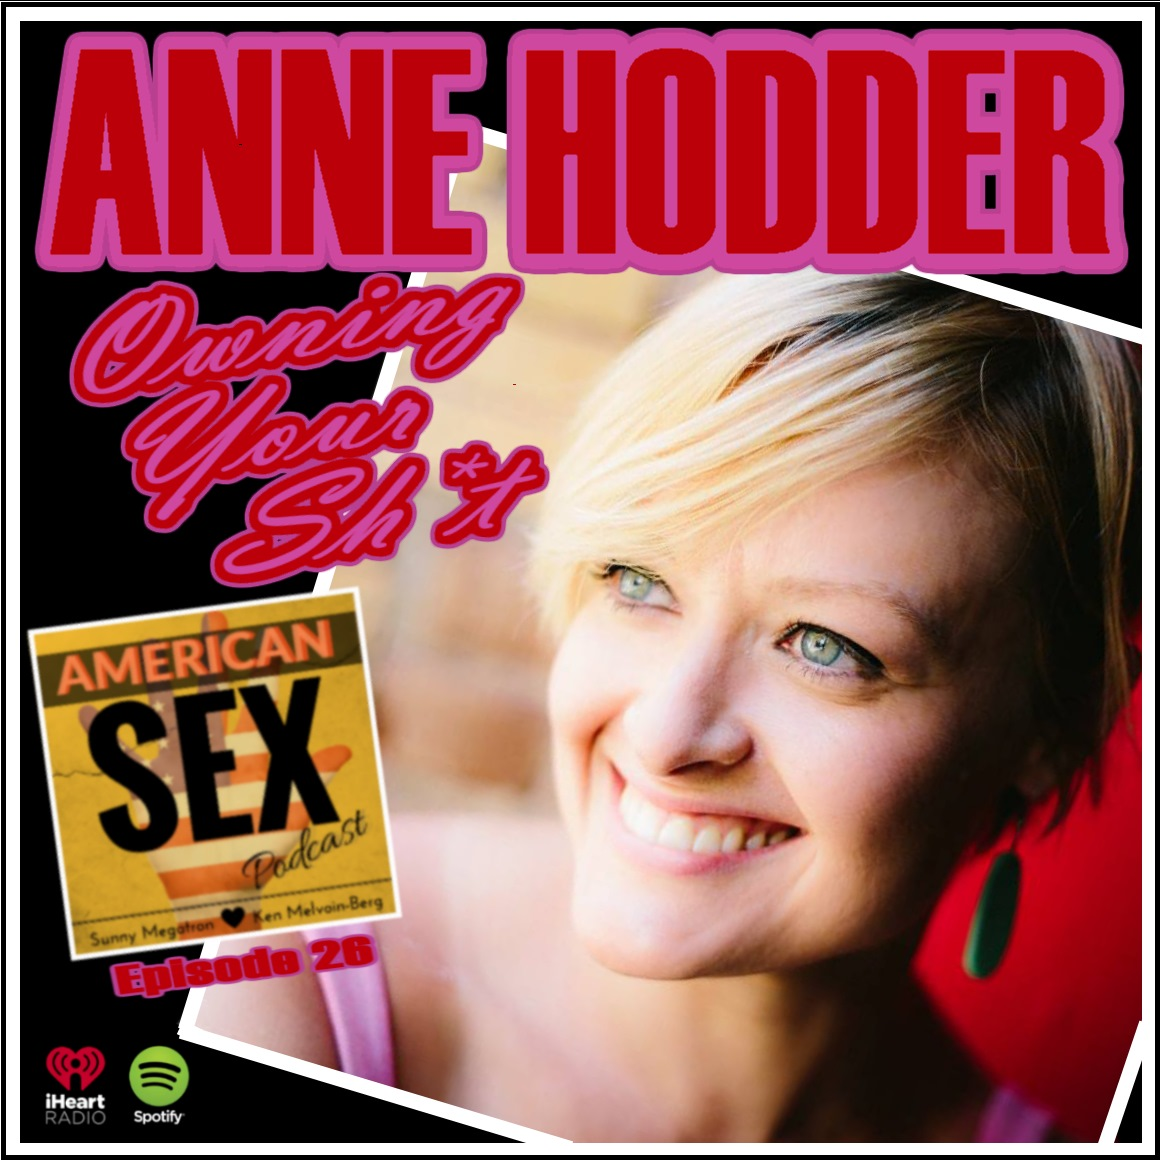 Anne Hodder Podcast interview